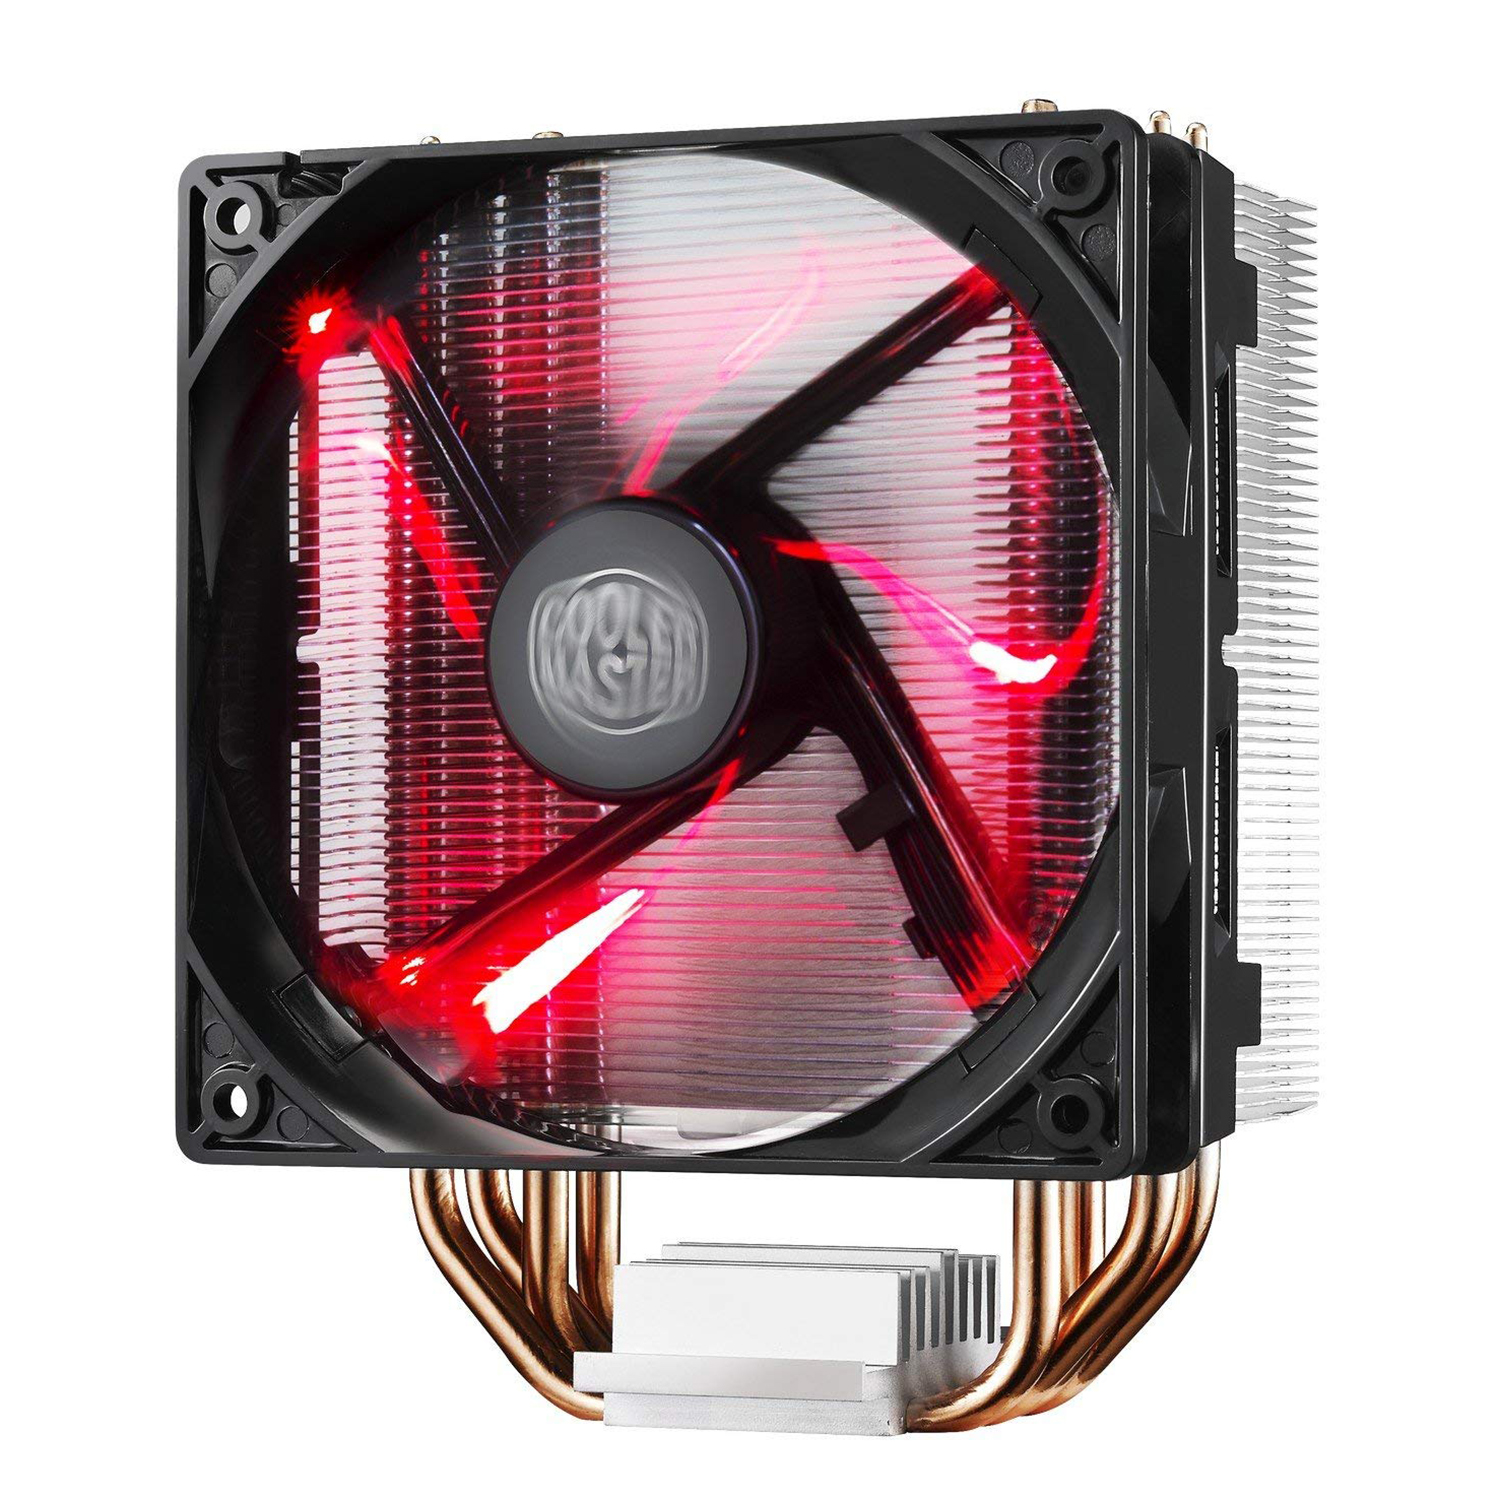 COOLER MASTER RR 212L 16PR R1 Hyper 212 LED CPU Cooler with PWM Fan, Four Direct Contact Heat Pipes, Unique Blade Design and R